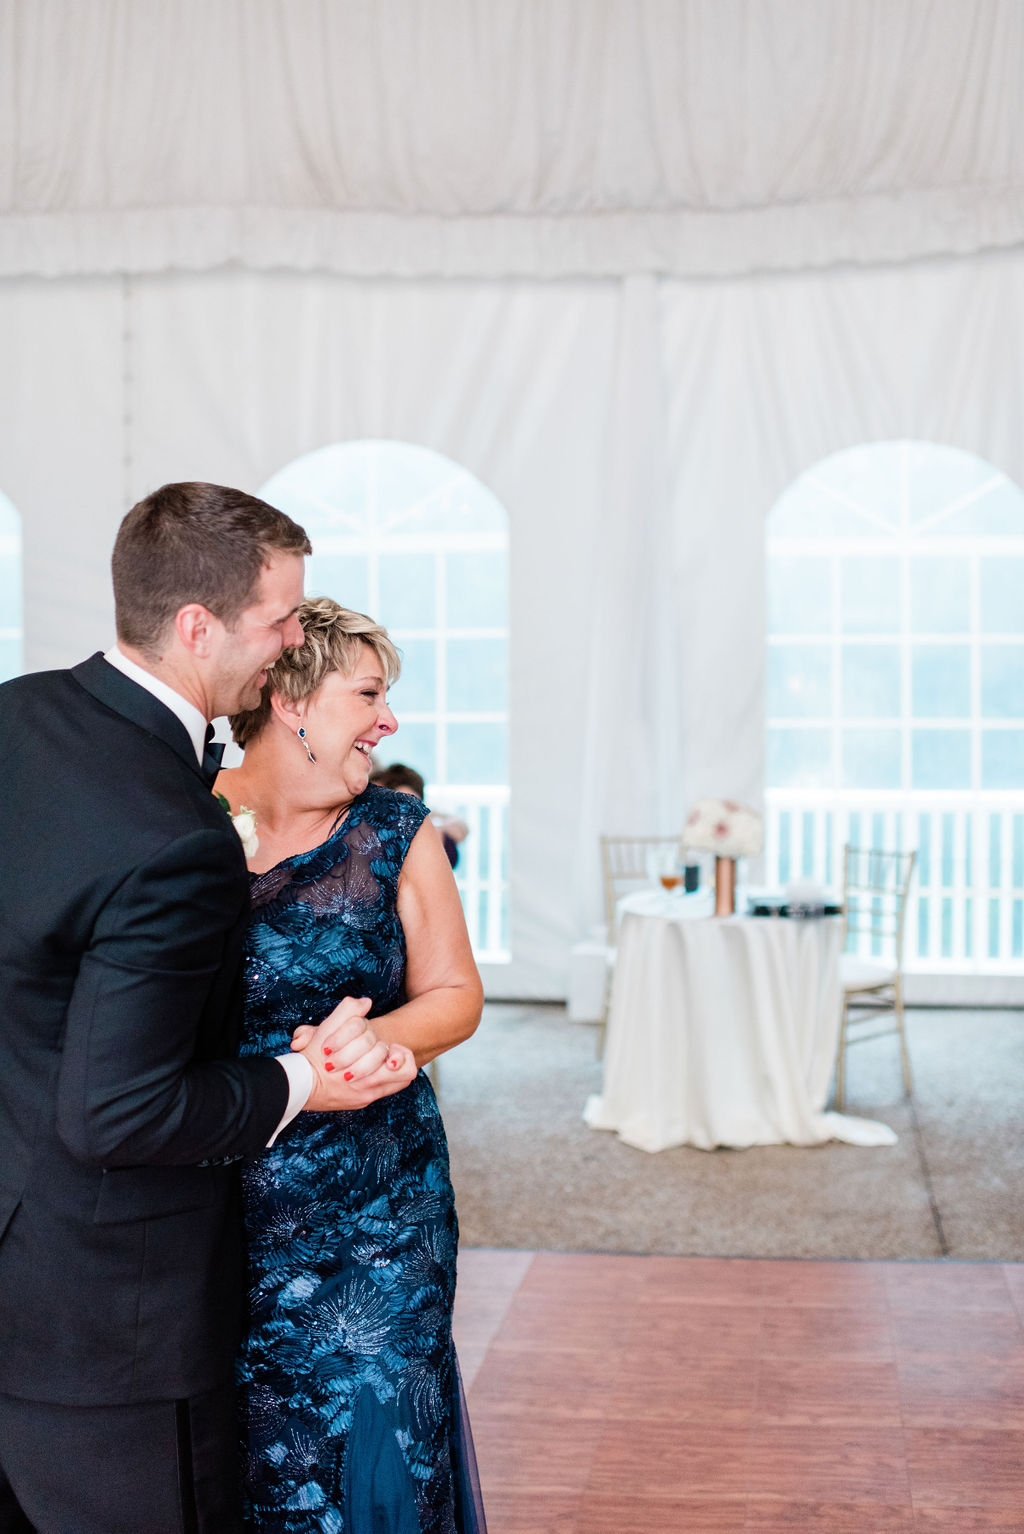 Mother/son dance for Nashville Wedding captured by Maria Gloer Photography